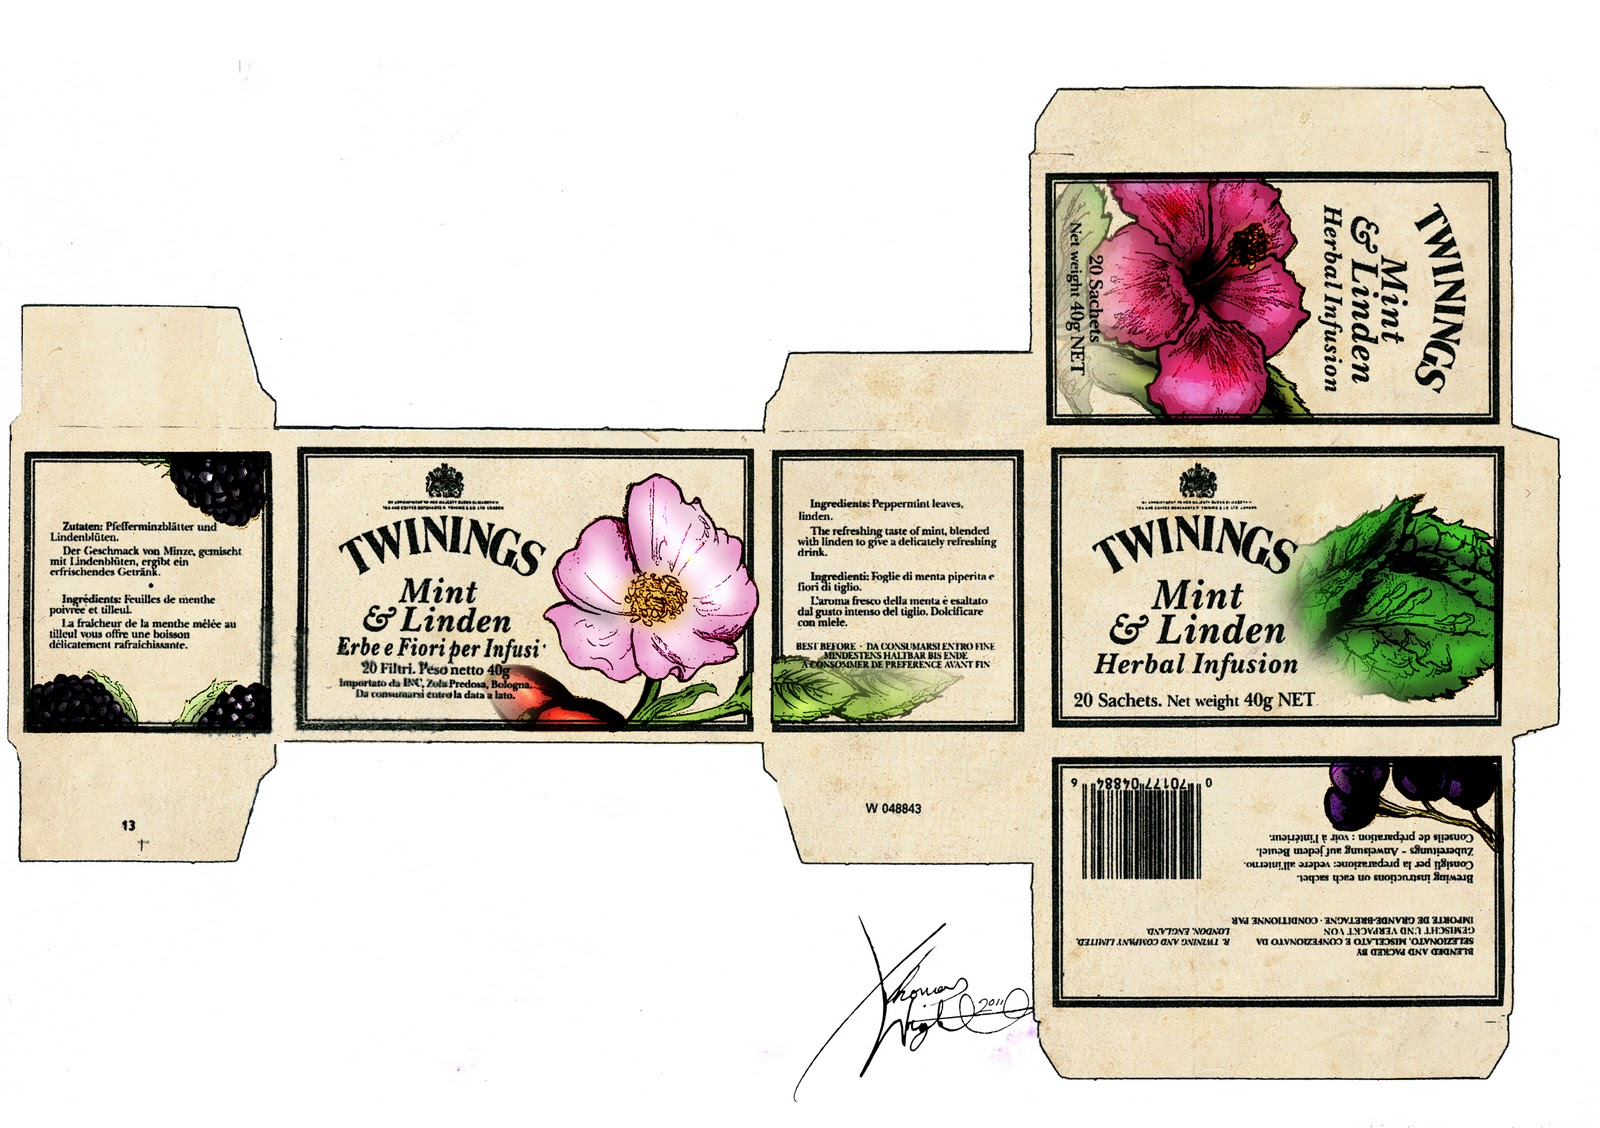 adobe illustrator packaging templates - thomas wright illustrator twining 39 s tea packaging